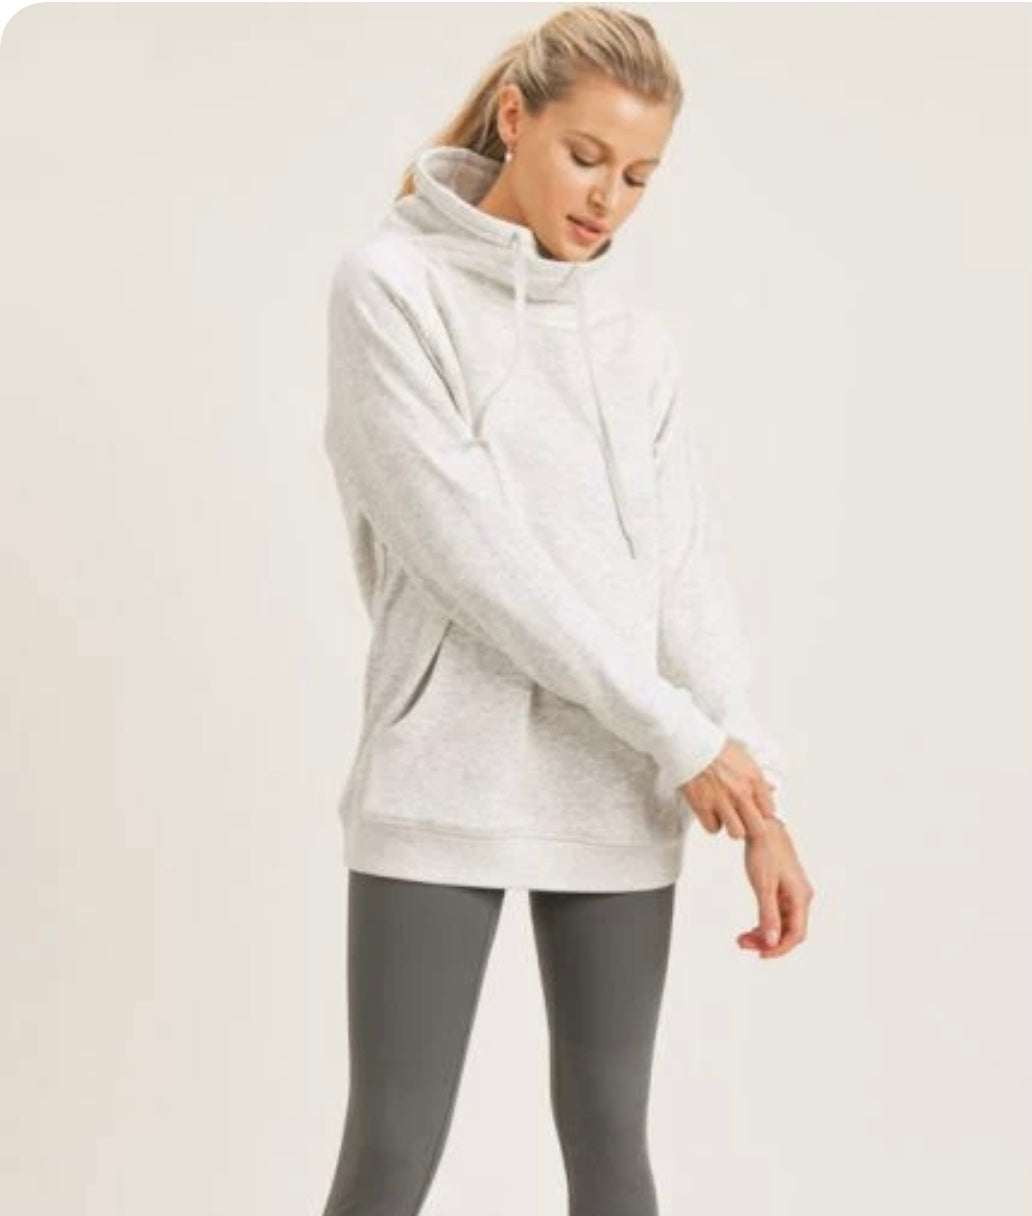 Cream Criss- Cross Cowl-neck Pull over